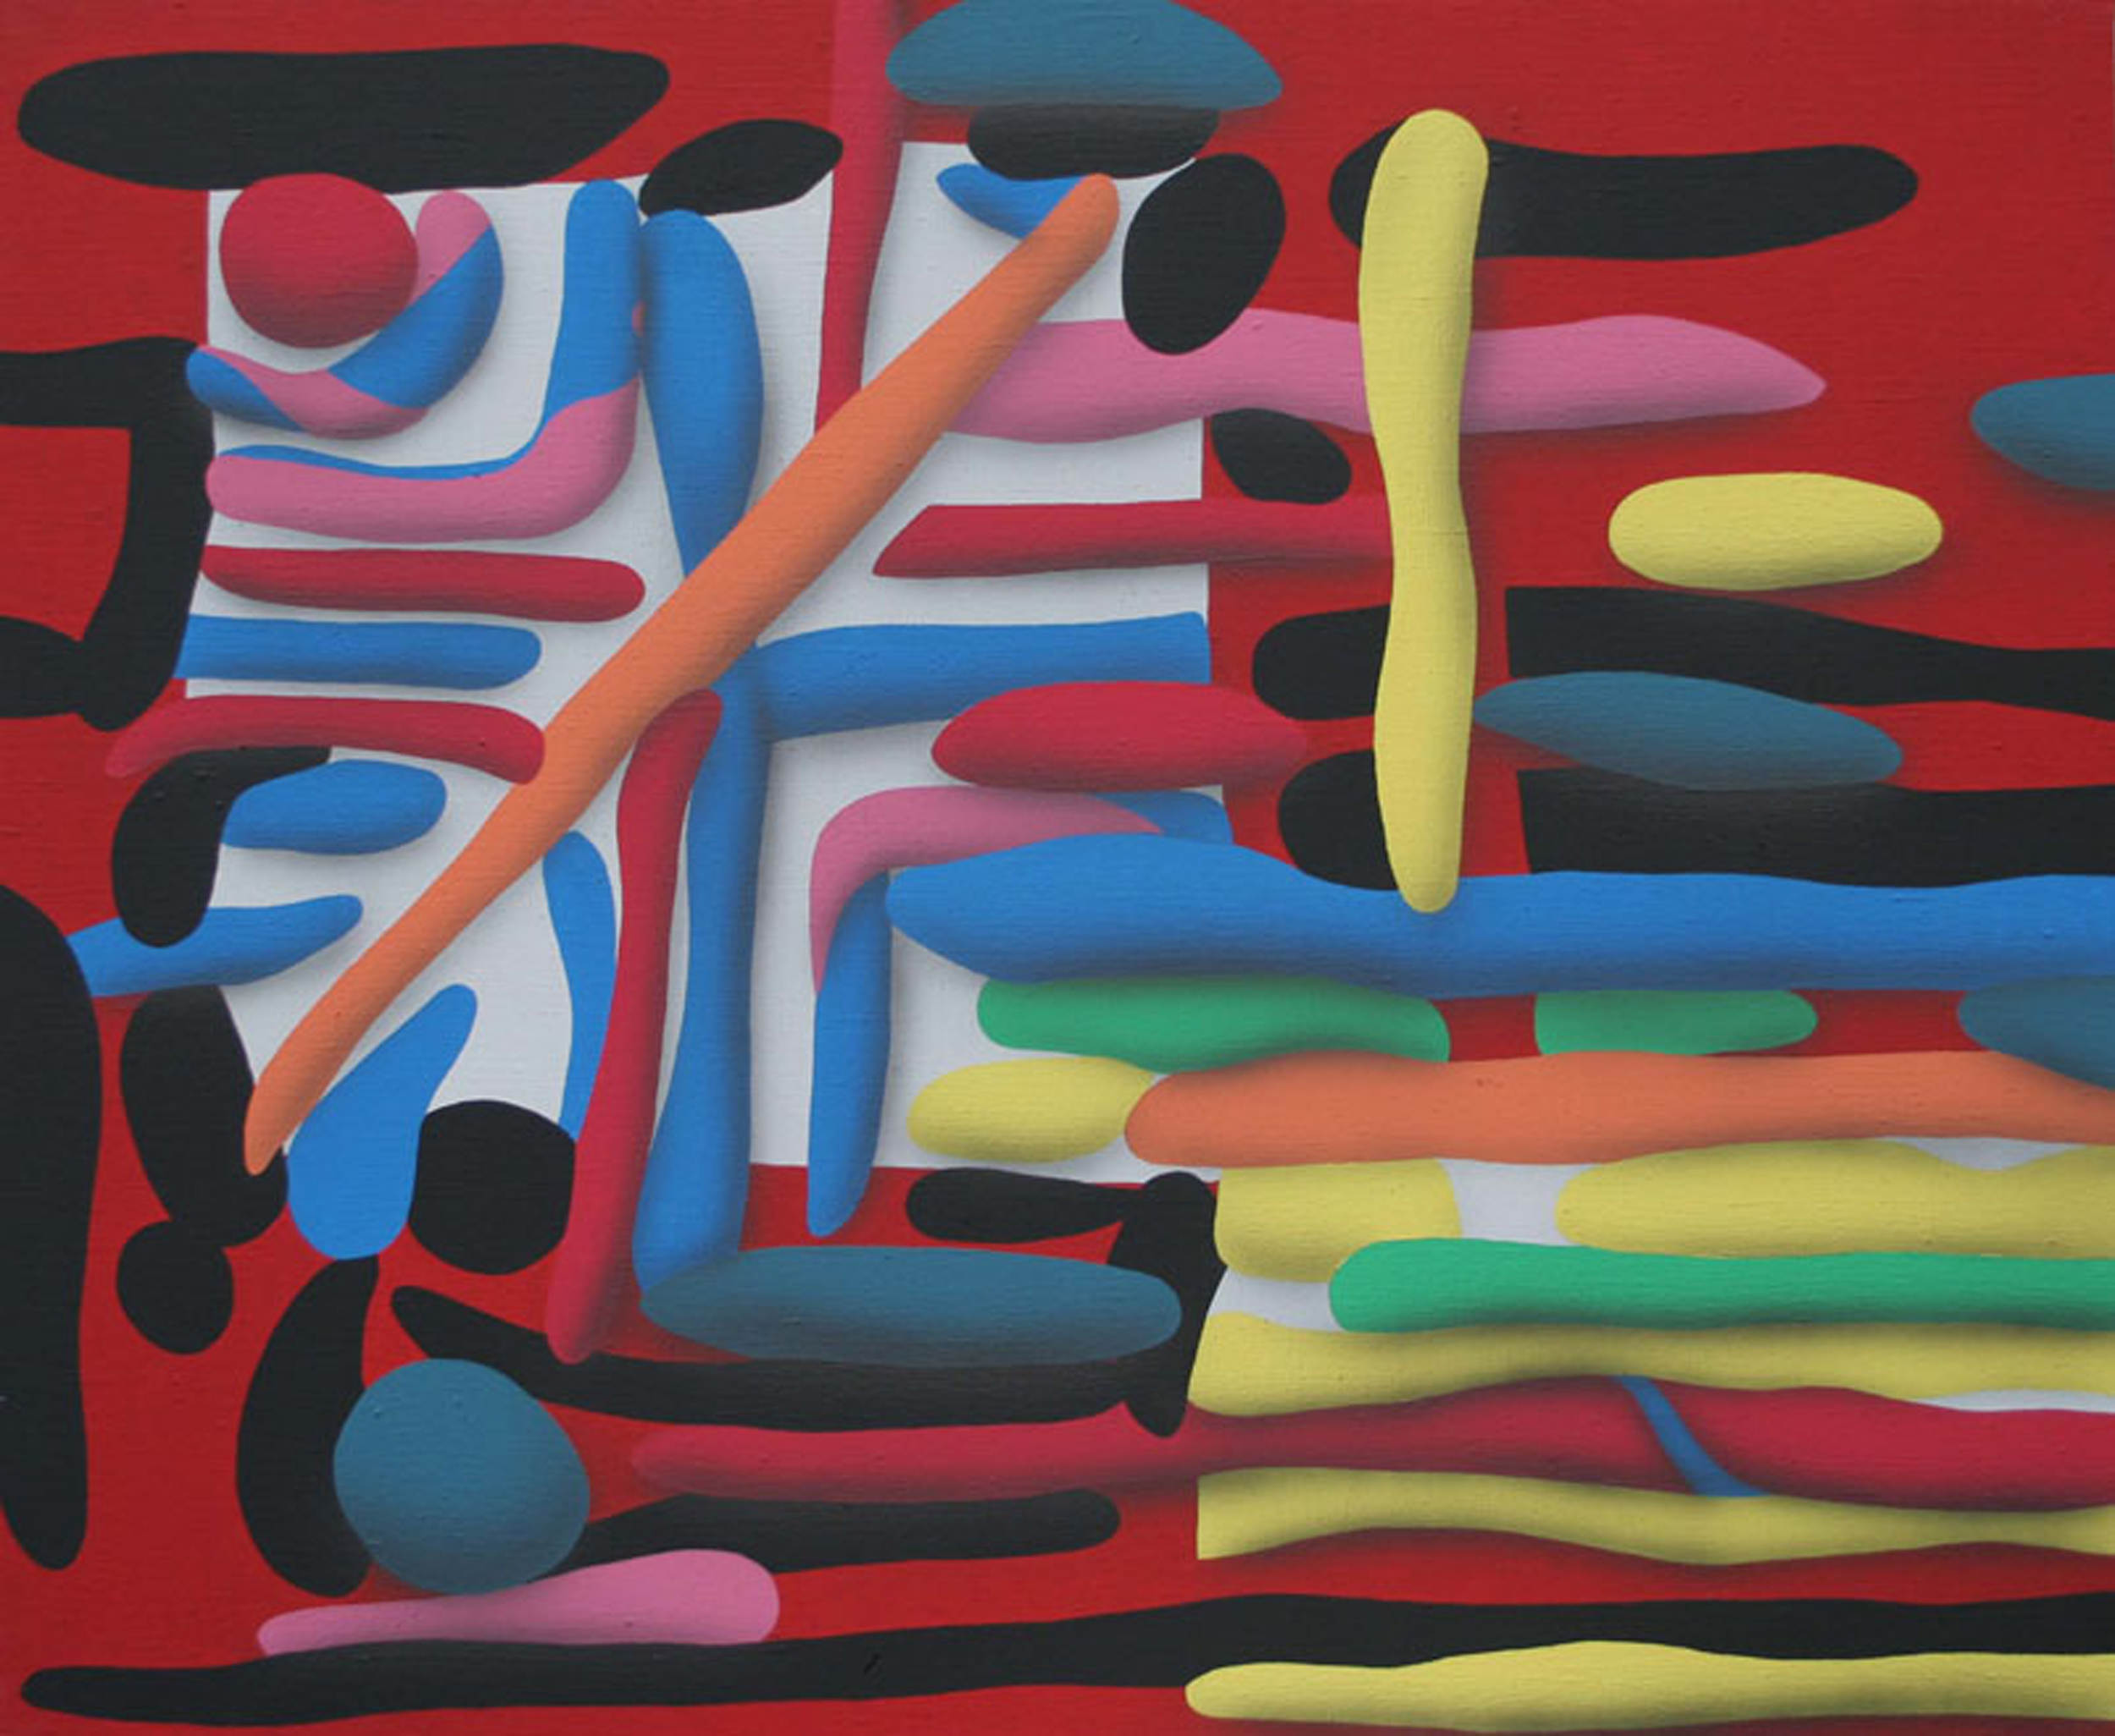 Touches Of Surface And Volume Forms IV. 2010, acrylic on canvas, 70 x 85 cm